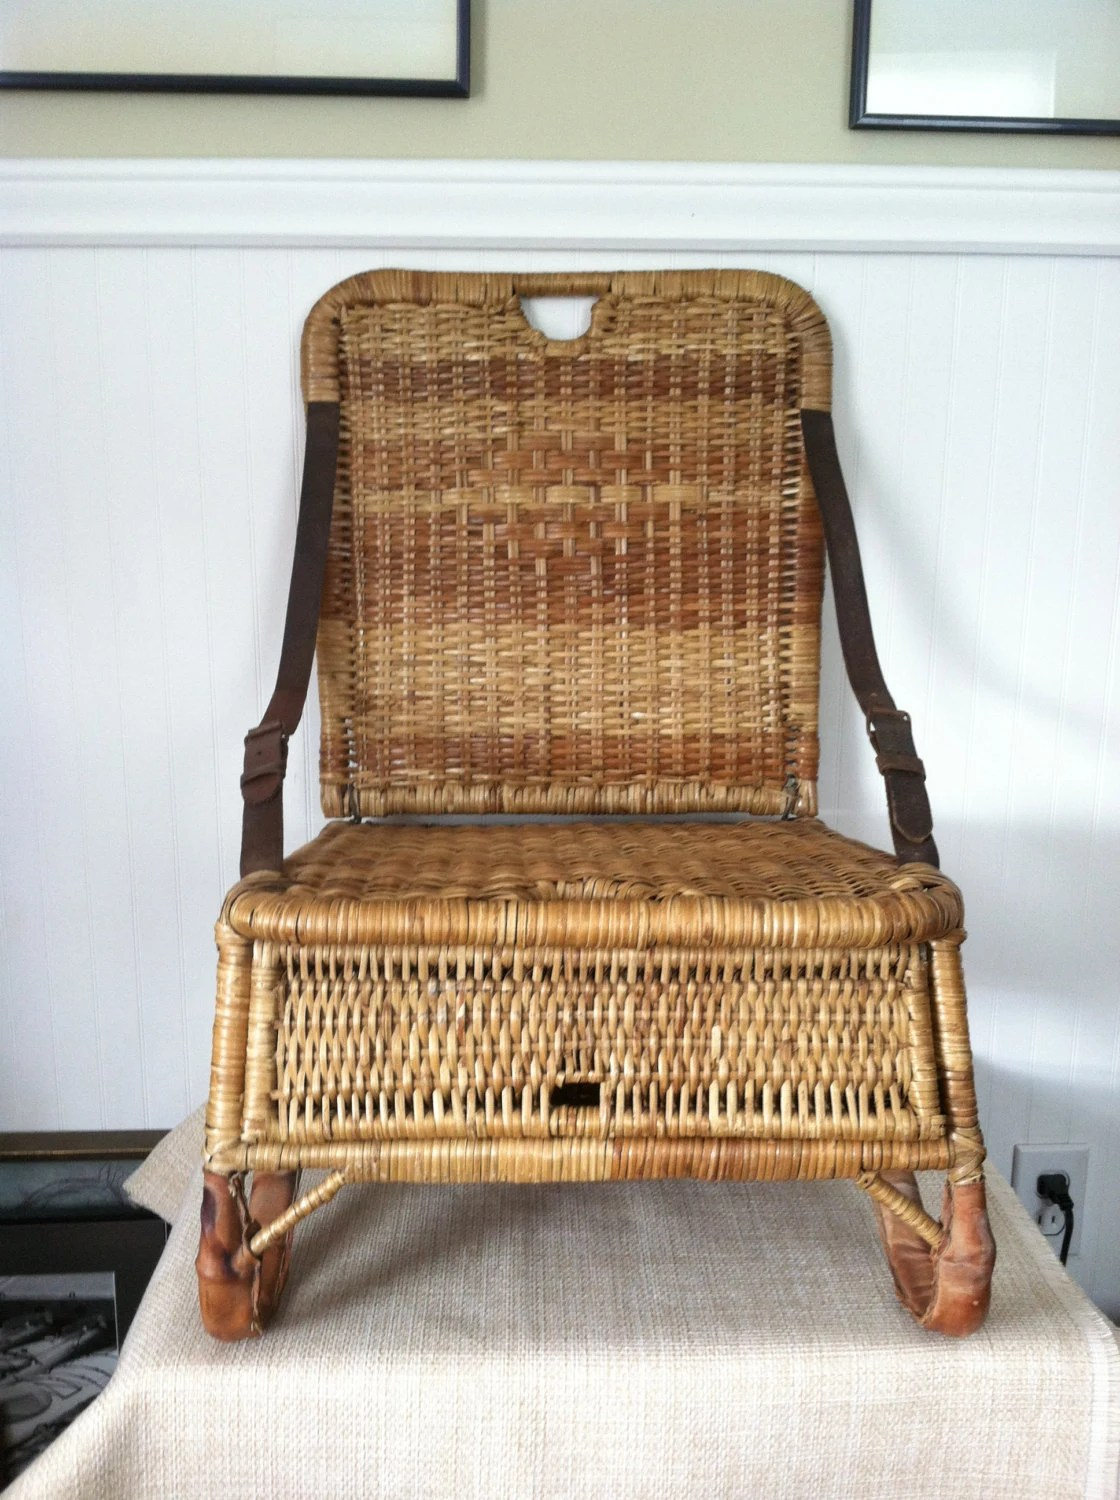 repair rattan chair seat ergonomic head support canoe vintage wicker portable folds up storage leather